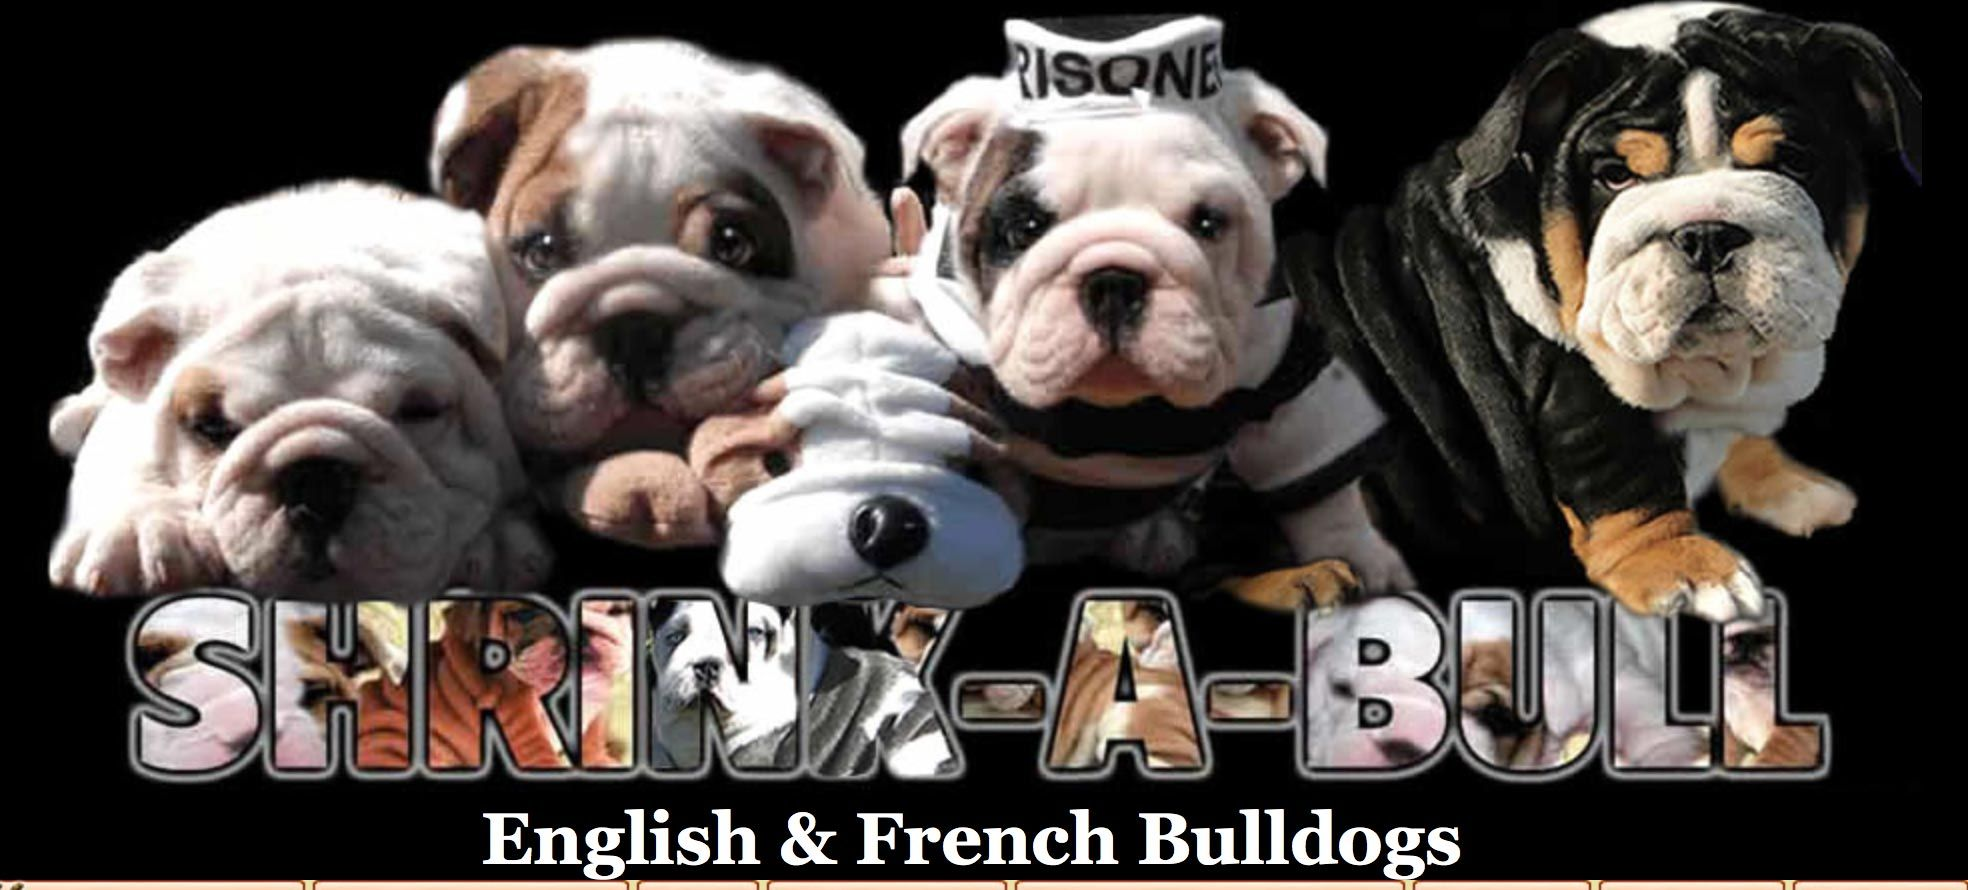 Shrinkabulls Bulldog Puppies Bulldog Puppies For Sale English